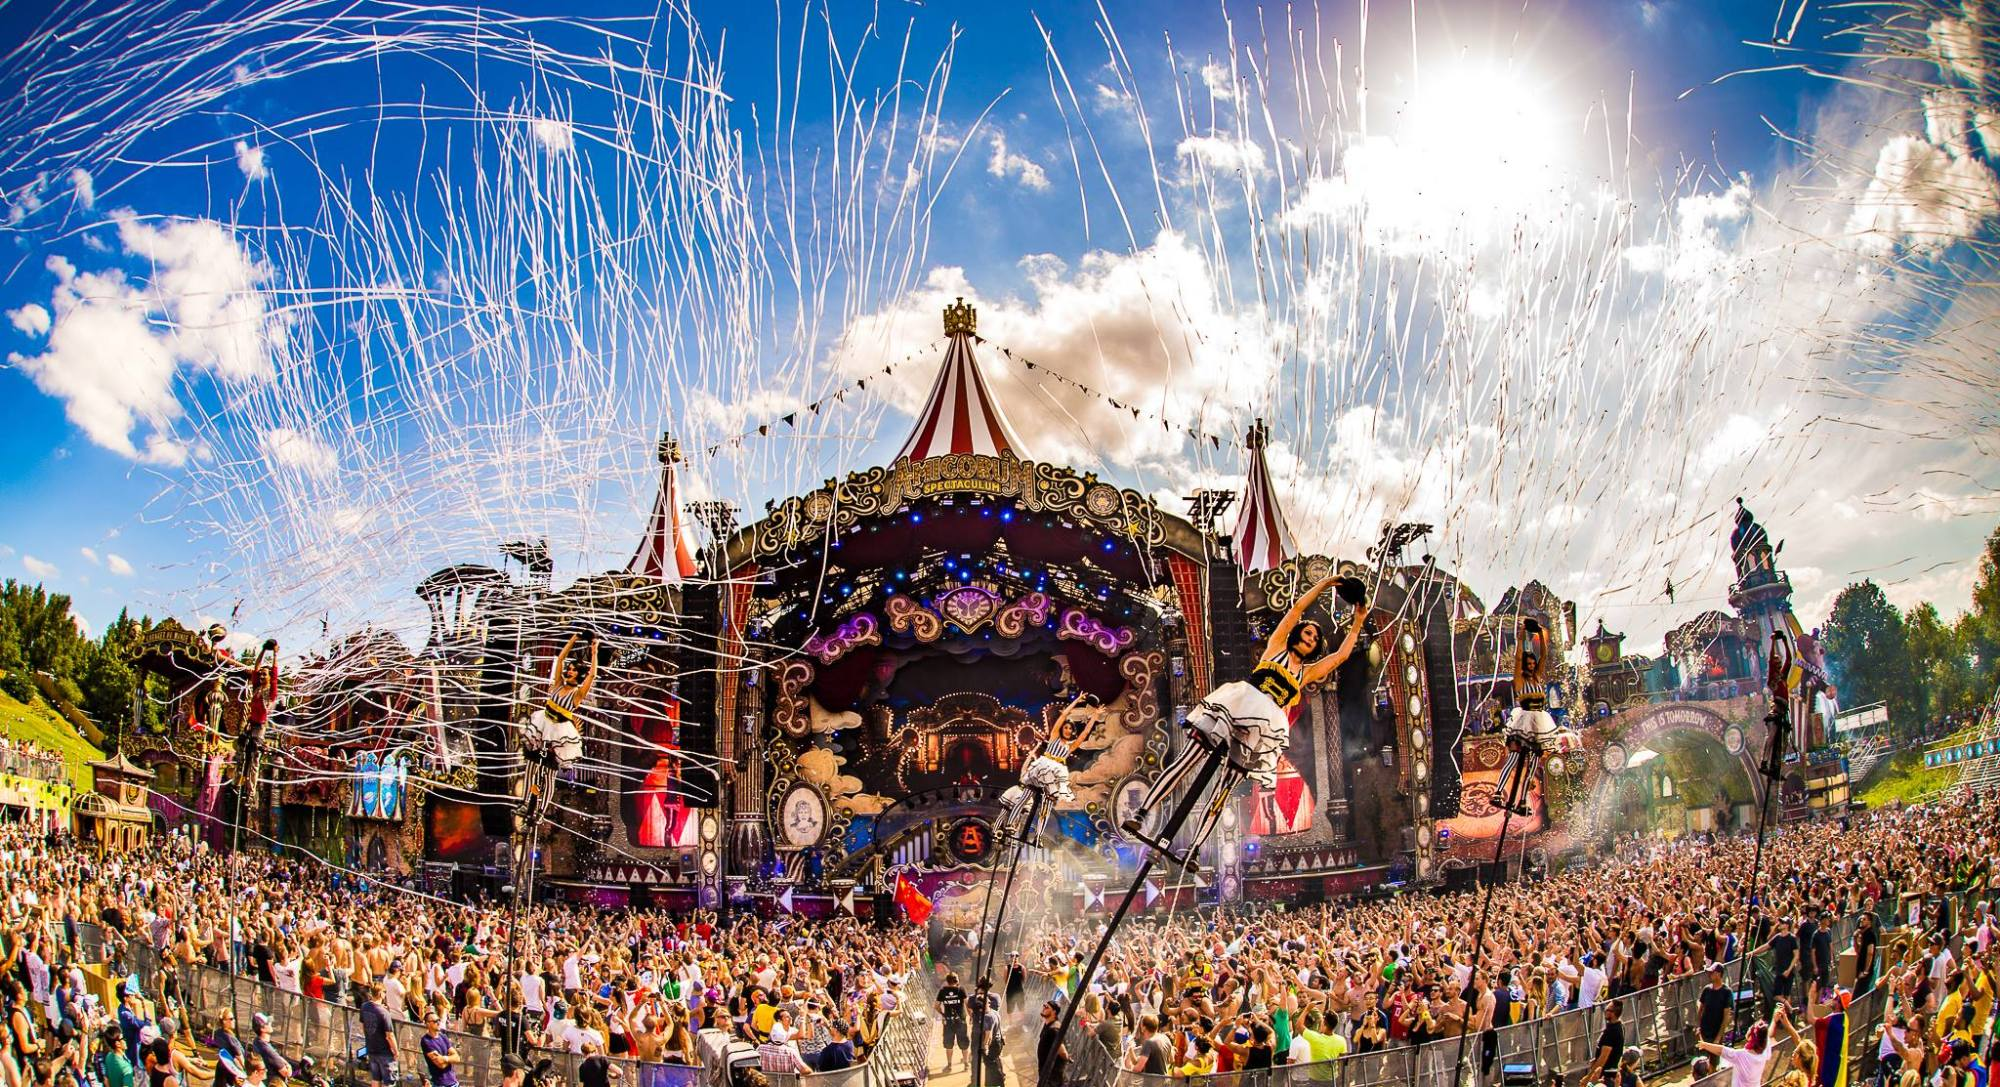 Fish eye view of the Tomorrowland concert in Belgium